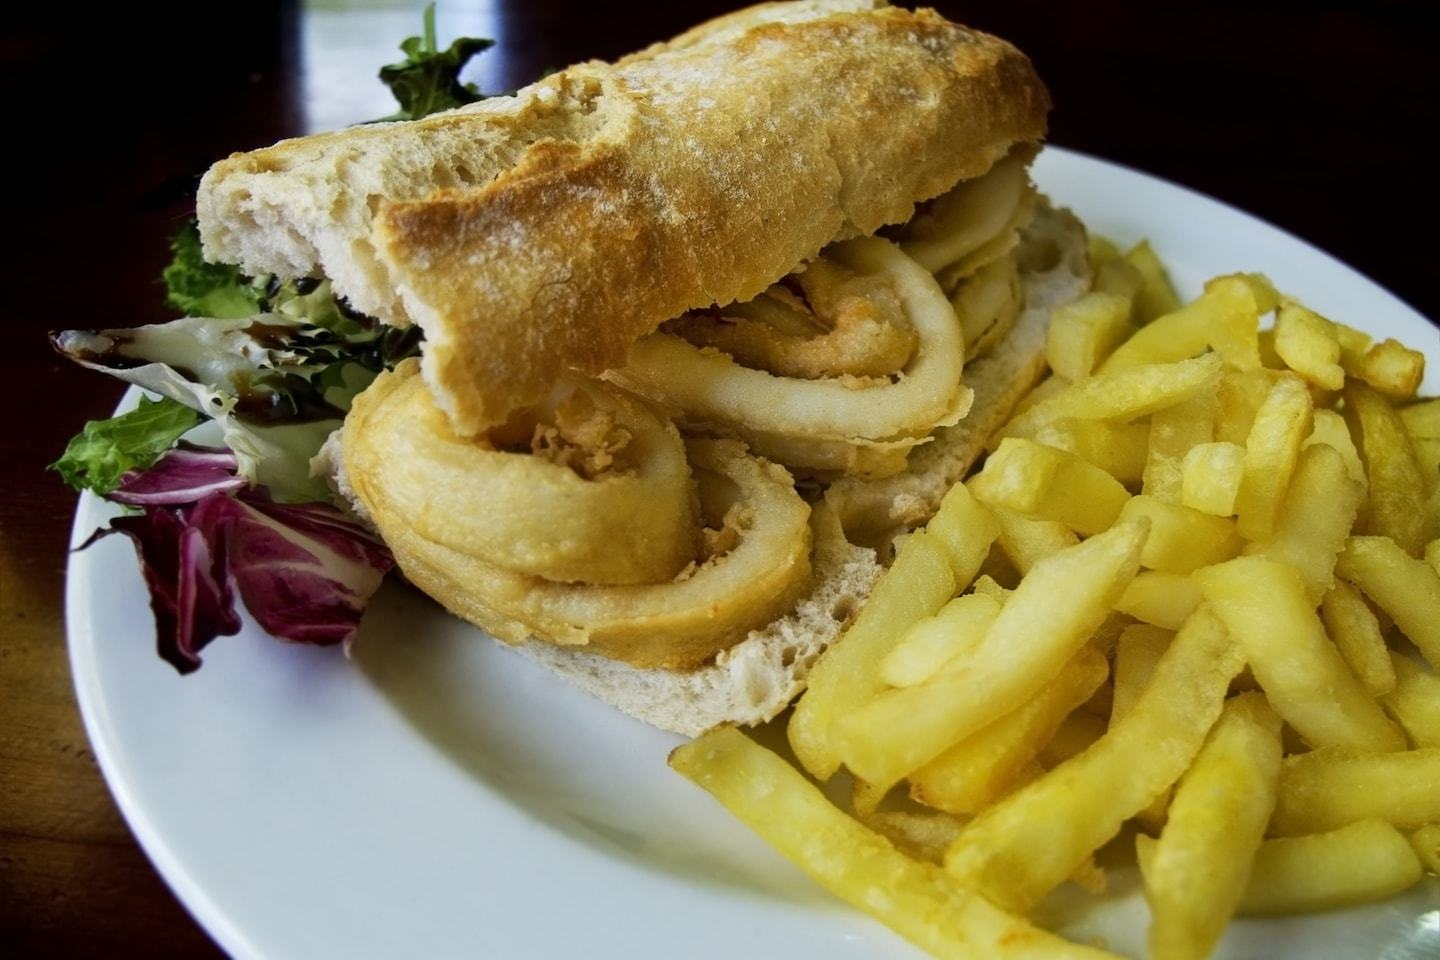 baguette sandwich with fried squid and a side of french fries